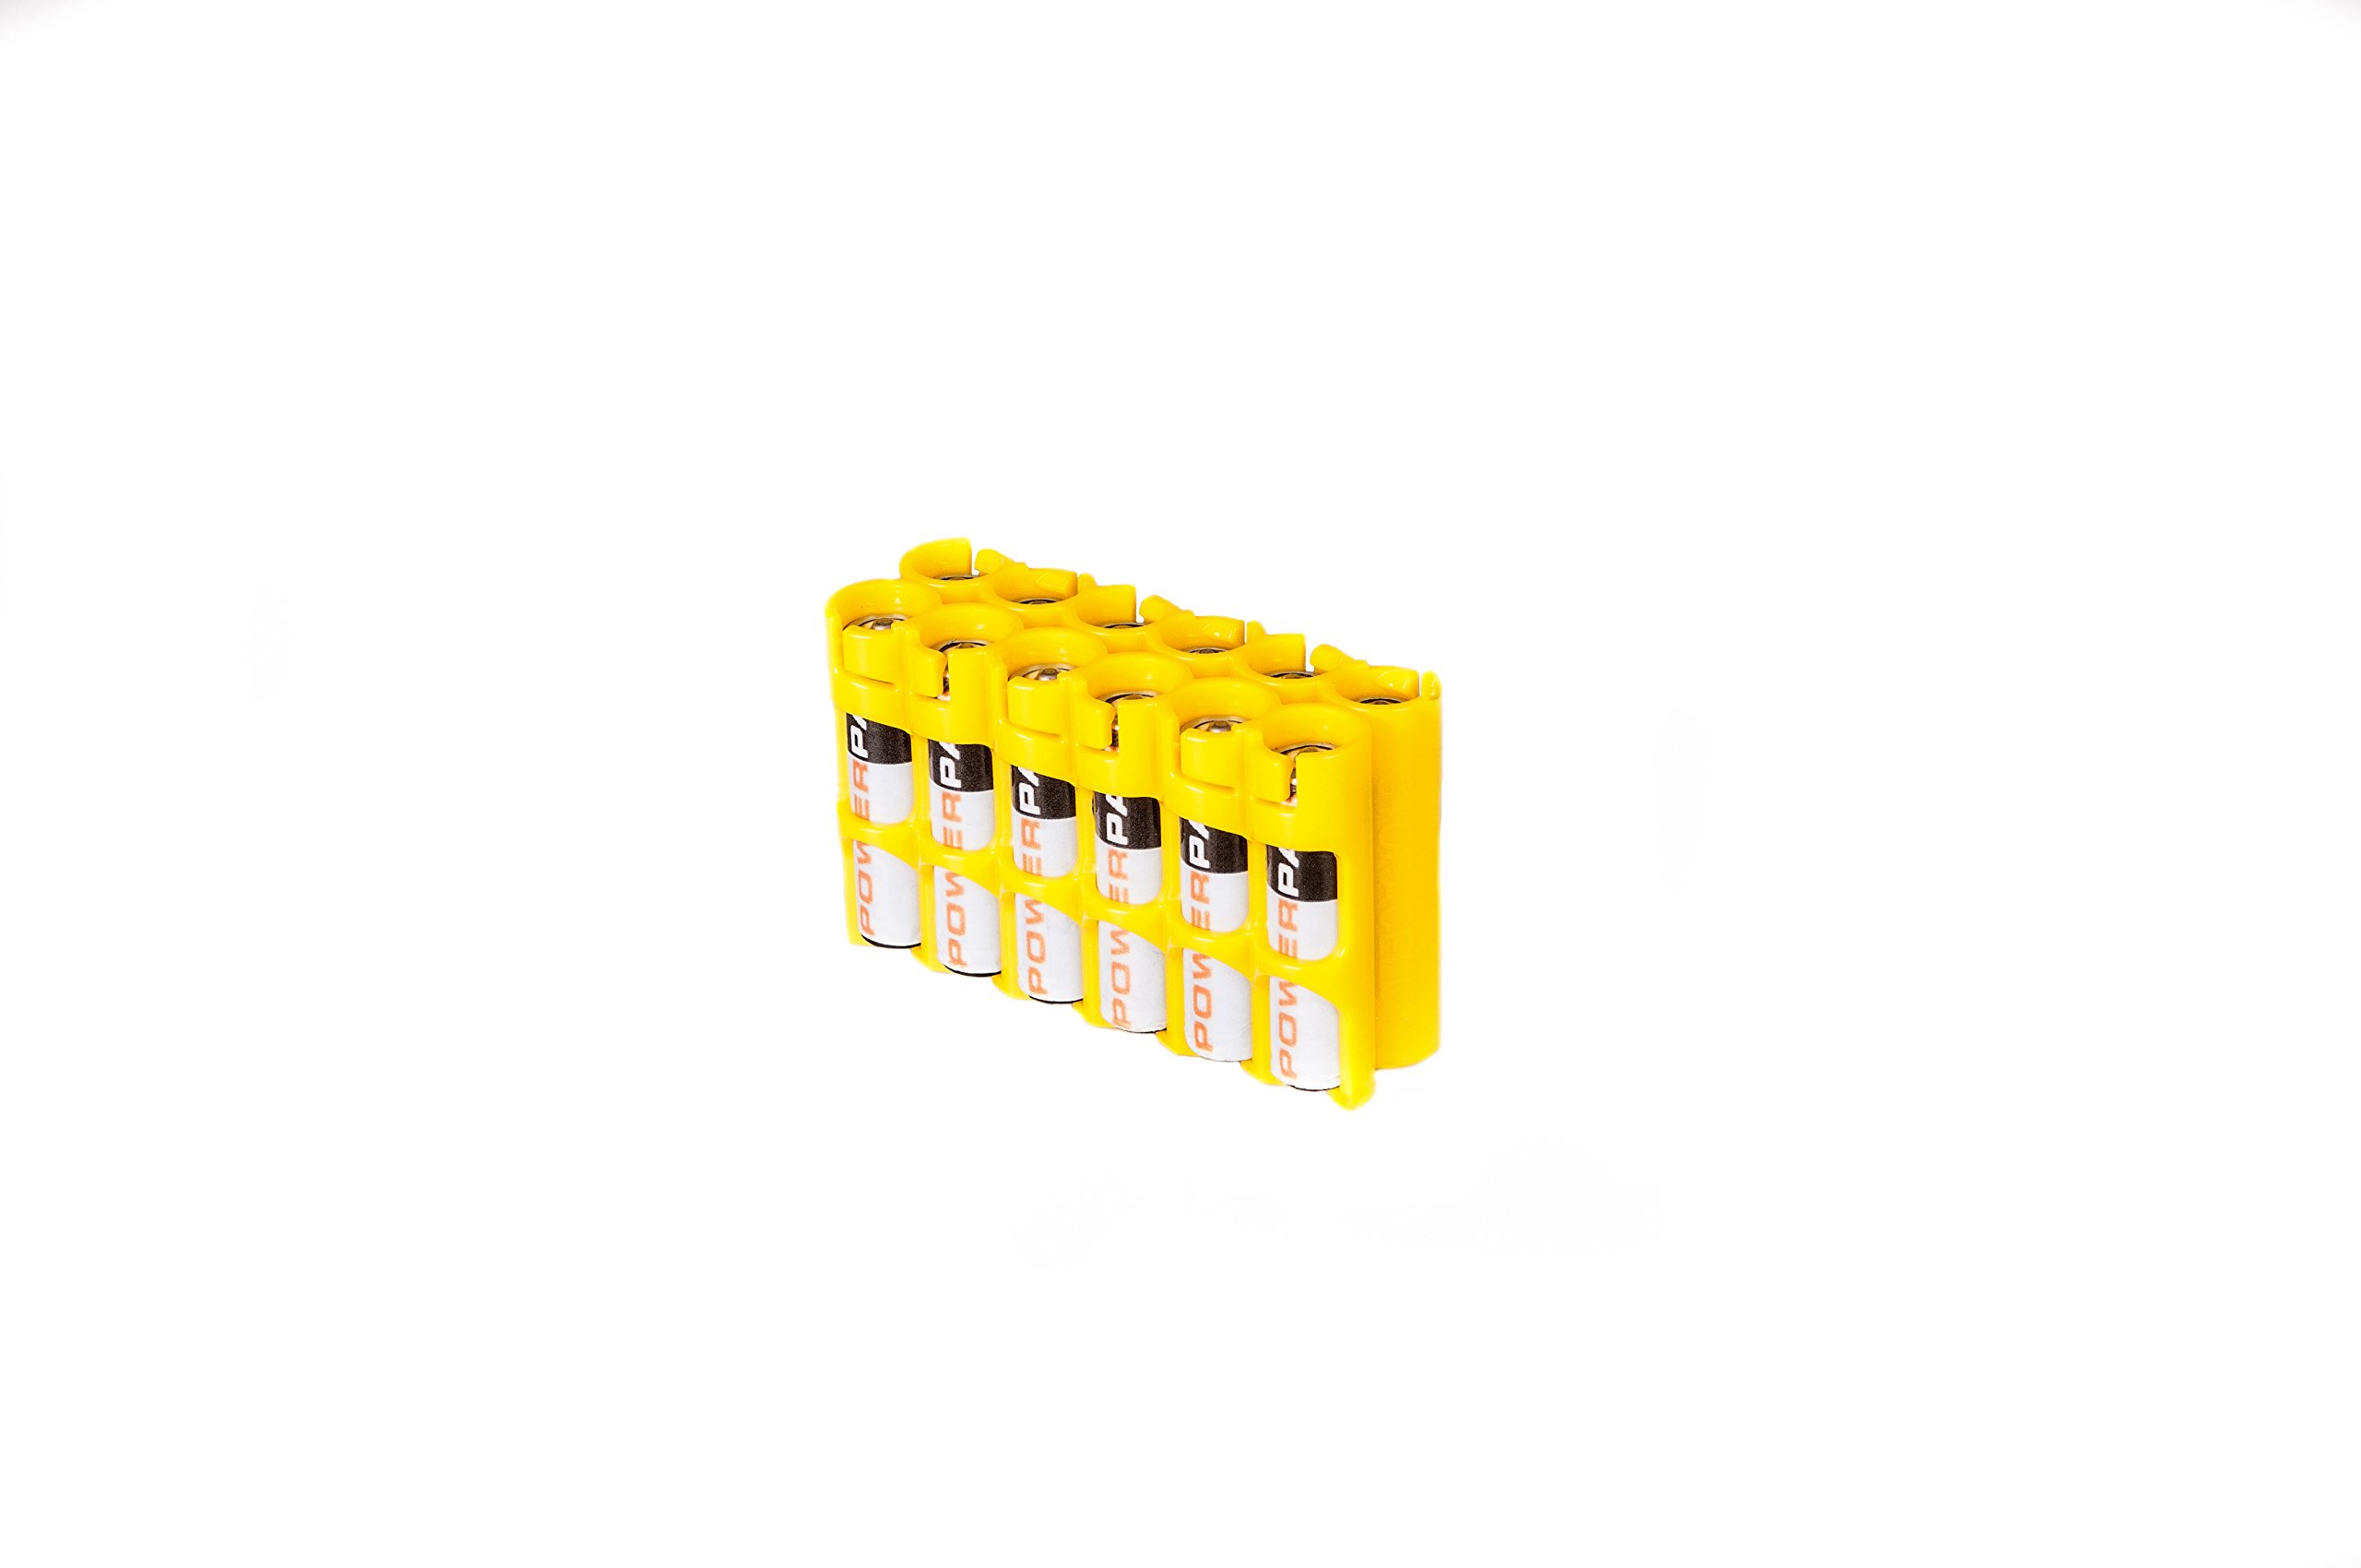 Storacell by Powerpax AAA Battery Caddy, Yellow, Holds 12 Batteries by Storacell (Image #1)